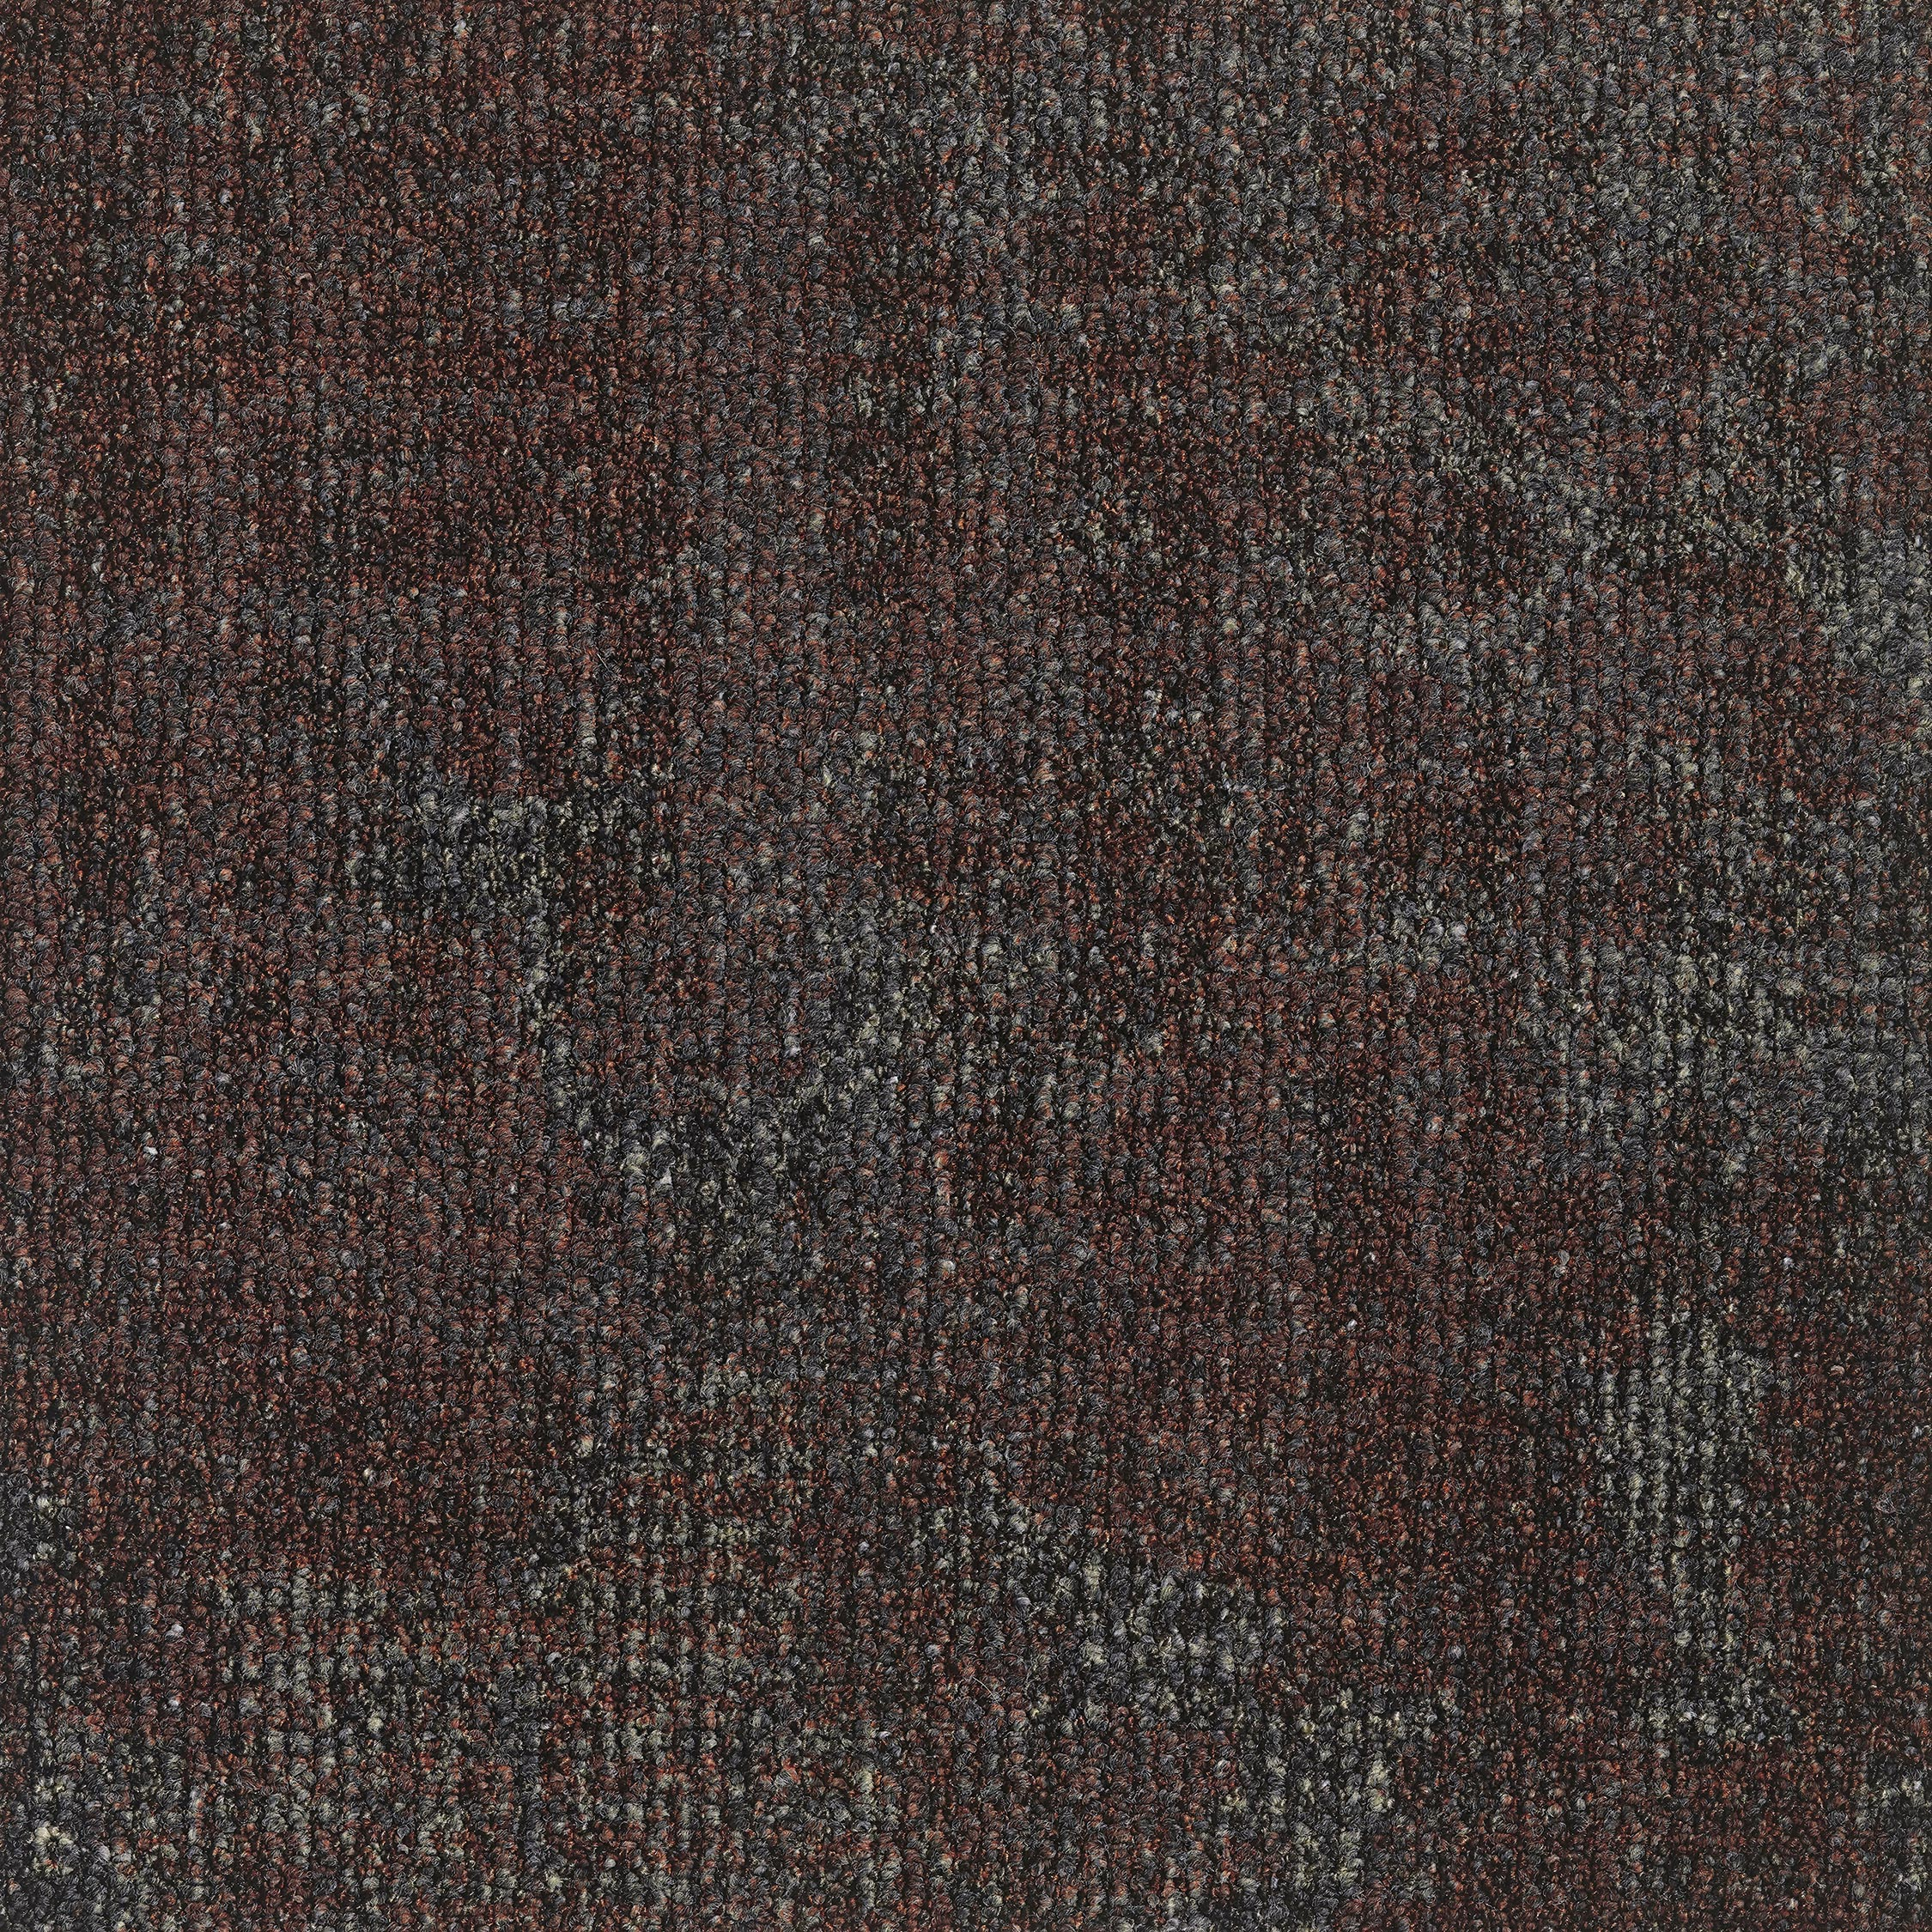 ReForm Transition Leaf grey brown 5595